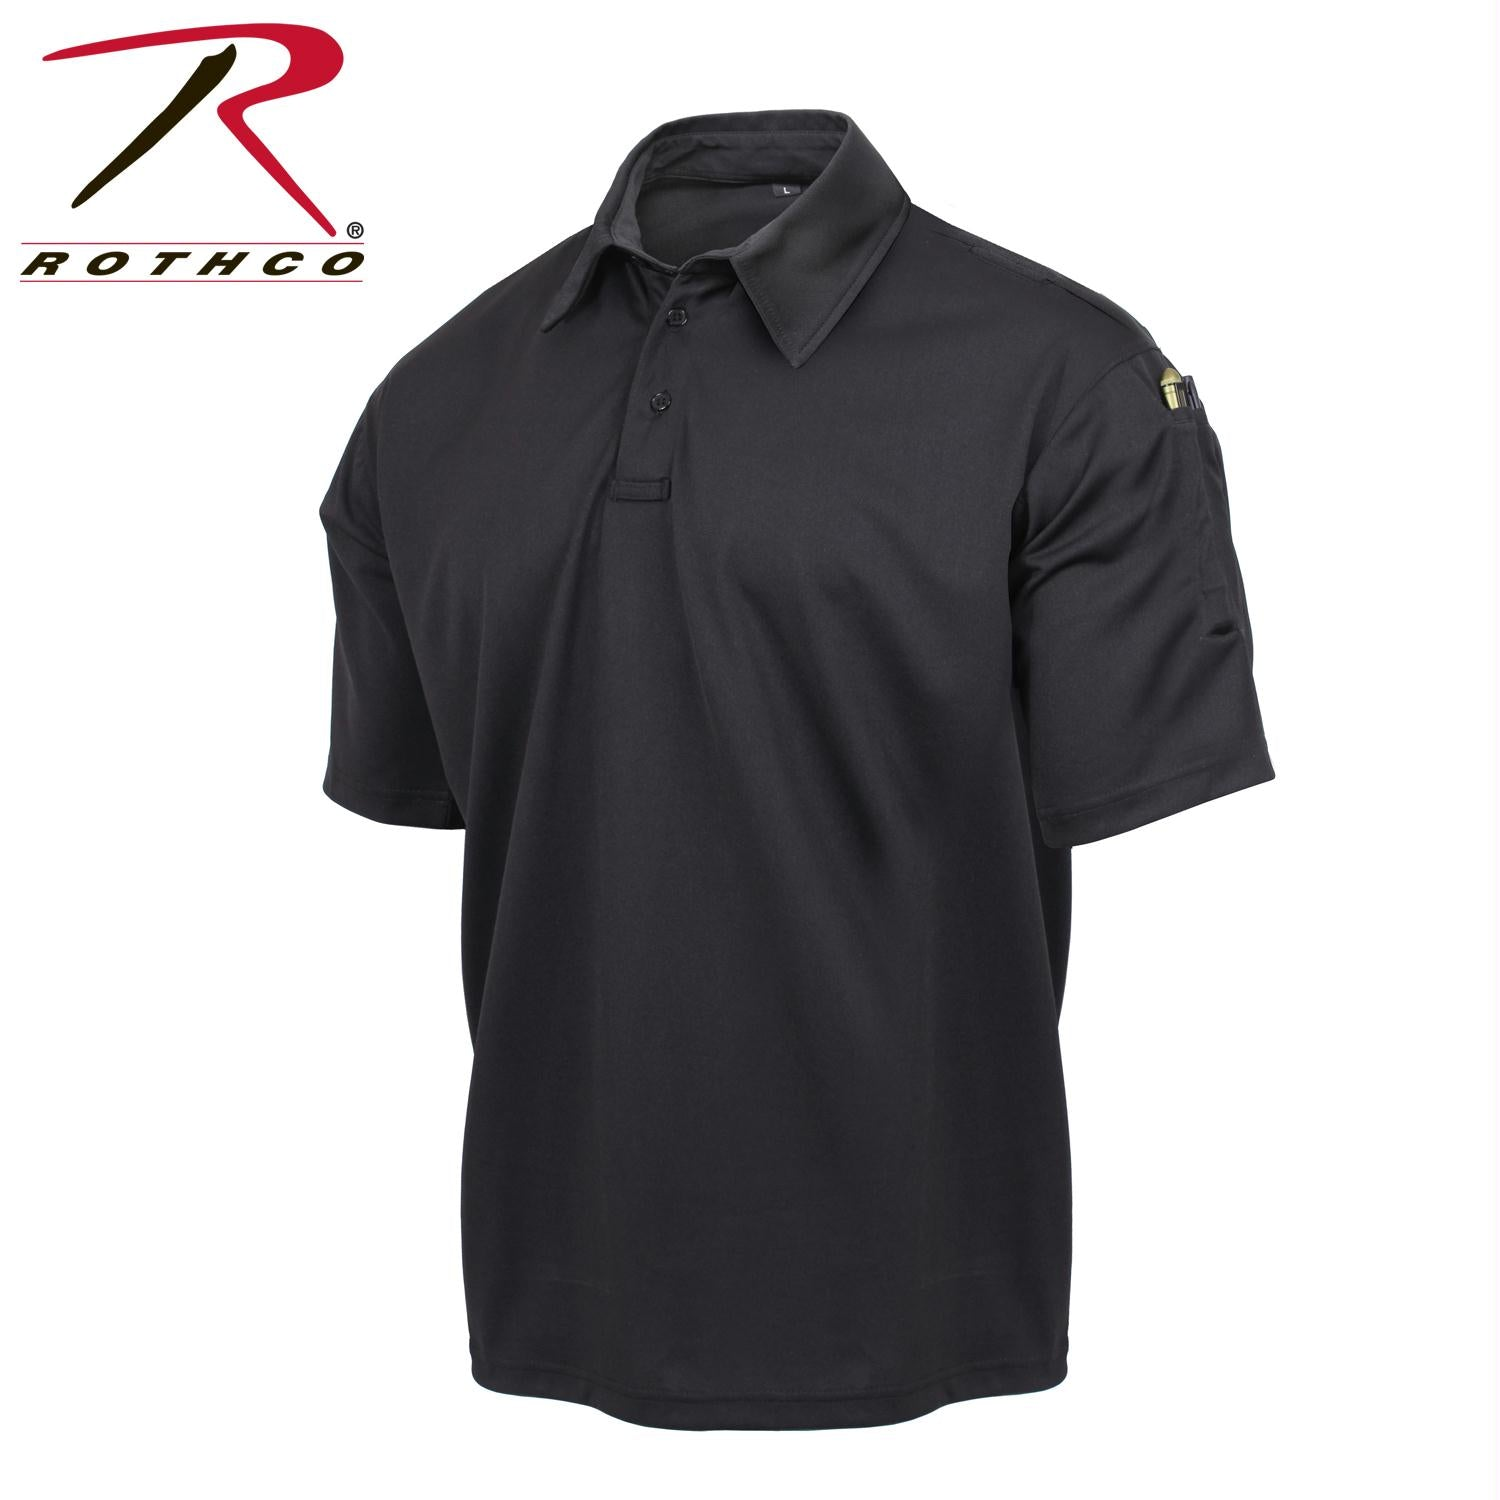 Rothco Tactical Performance Polo Shirt